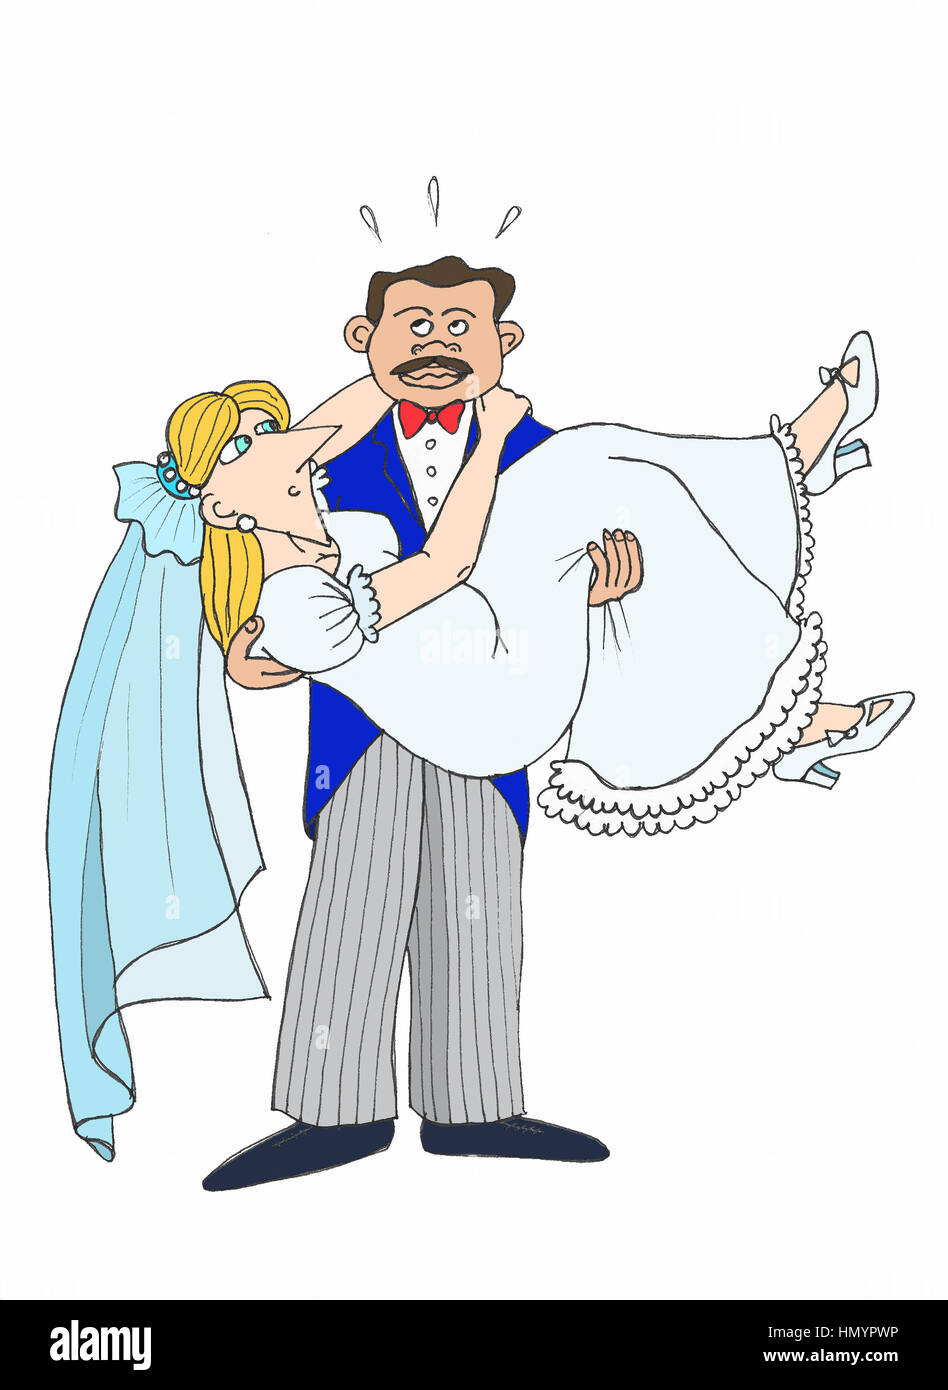 Just married. Illustration. - Stock Image